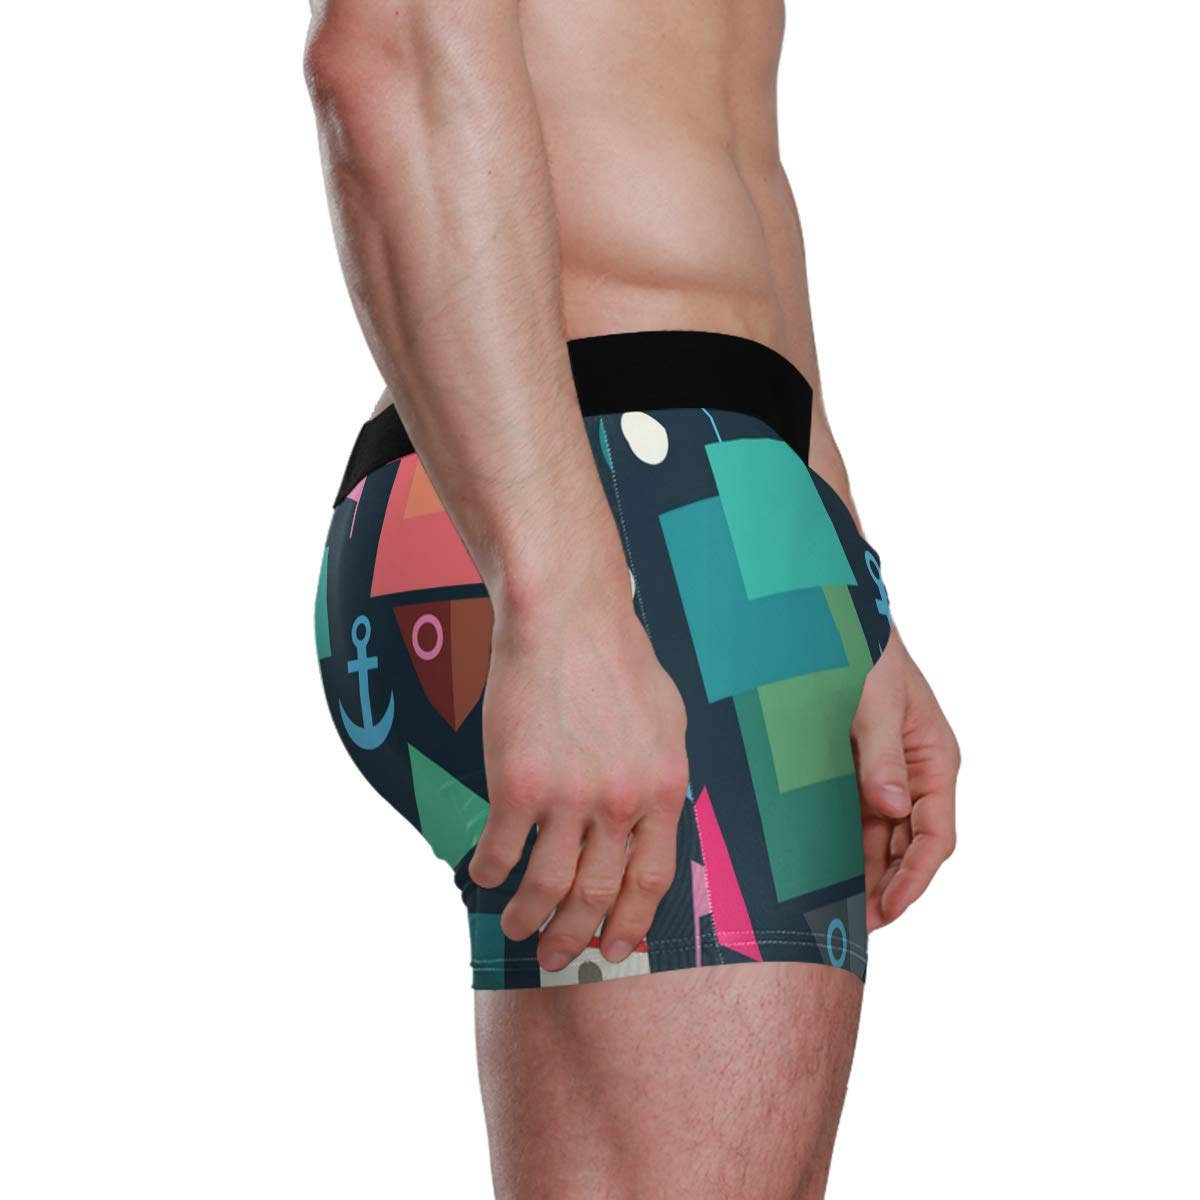 Geometry of The Sea Vipsk Seamless Stretch Mens Polyester Boxer Briefs Underwear 1-Pack Set